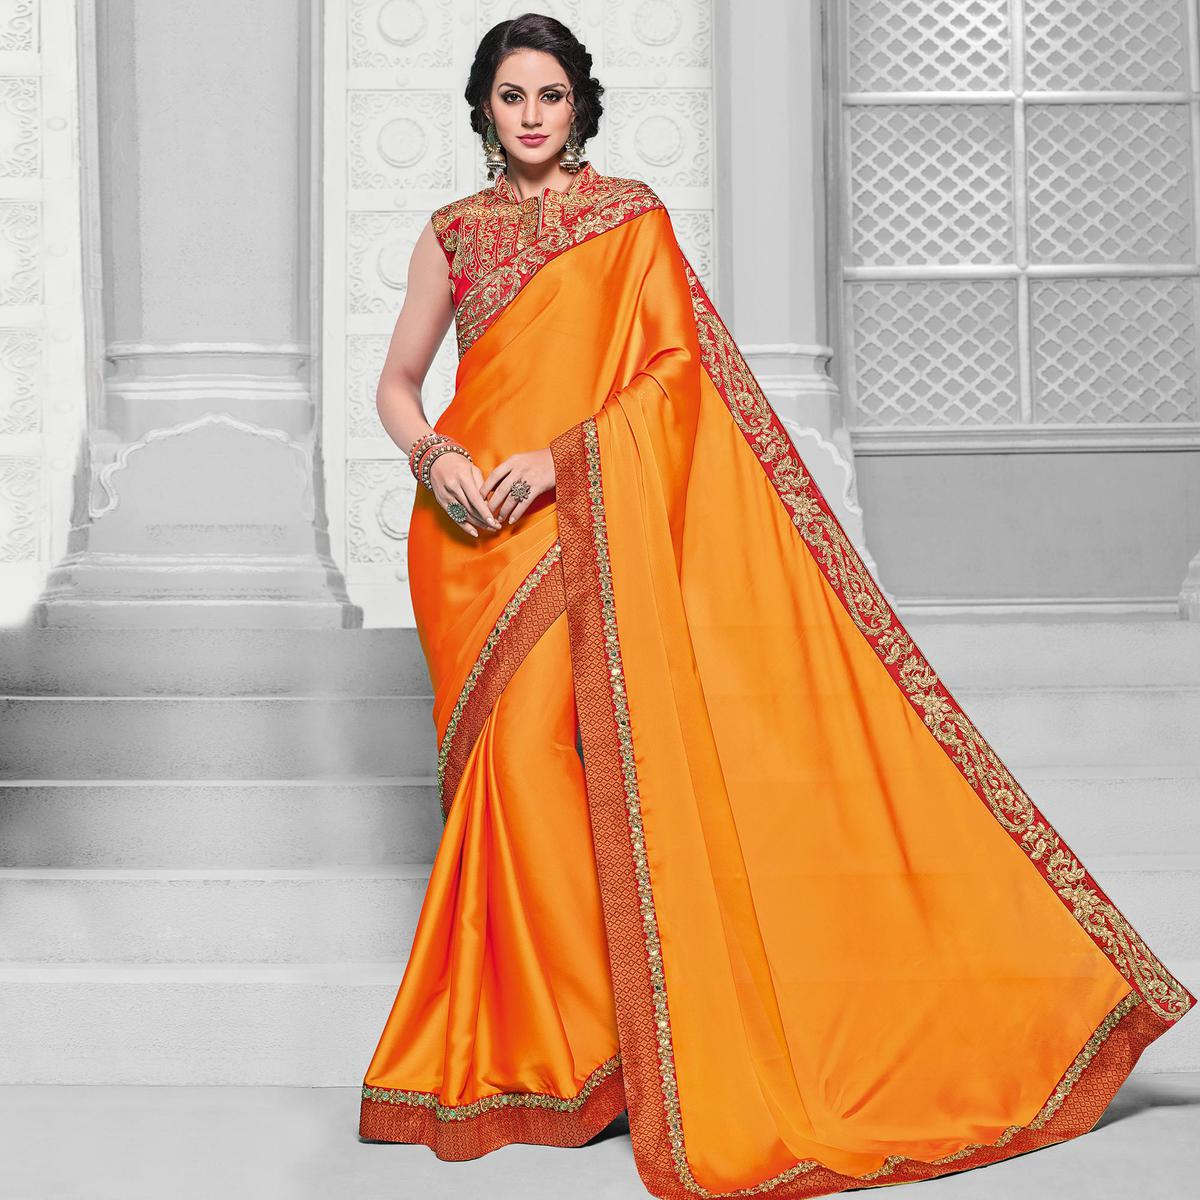 Ravishing Orange Colored Designer Embroidered Partywear Two-Tone, Georgette Saree